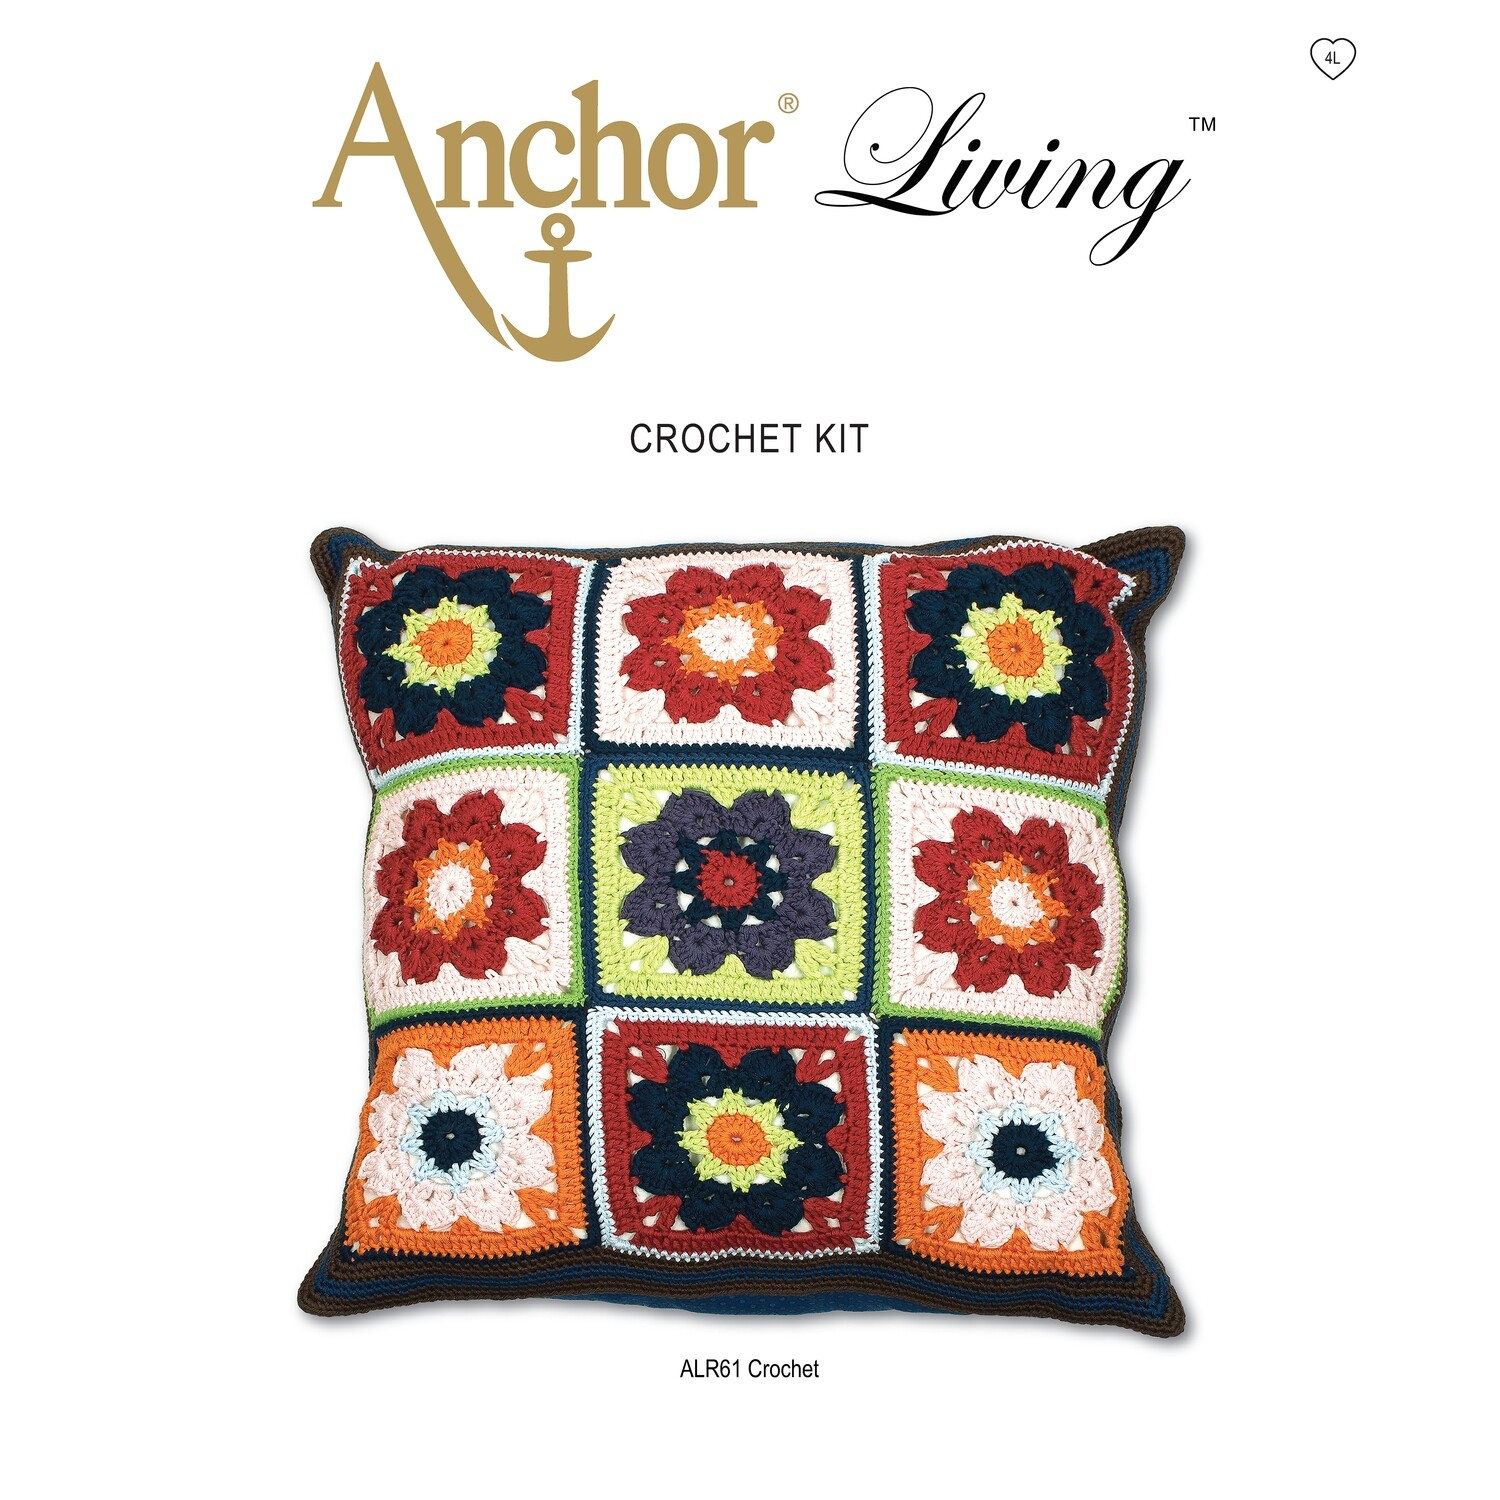 Anchor Living Crochet Kit - Crochet Cushion